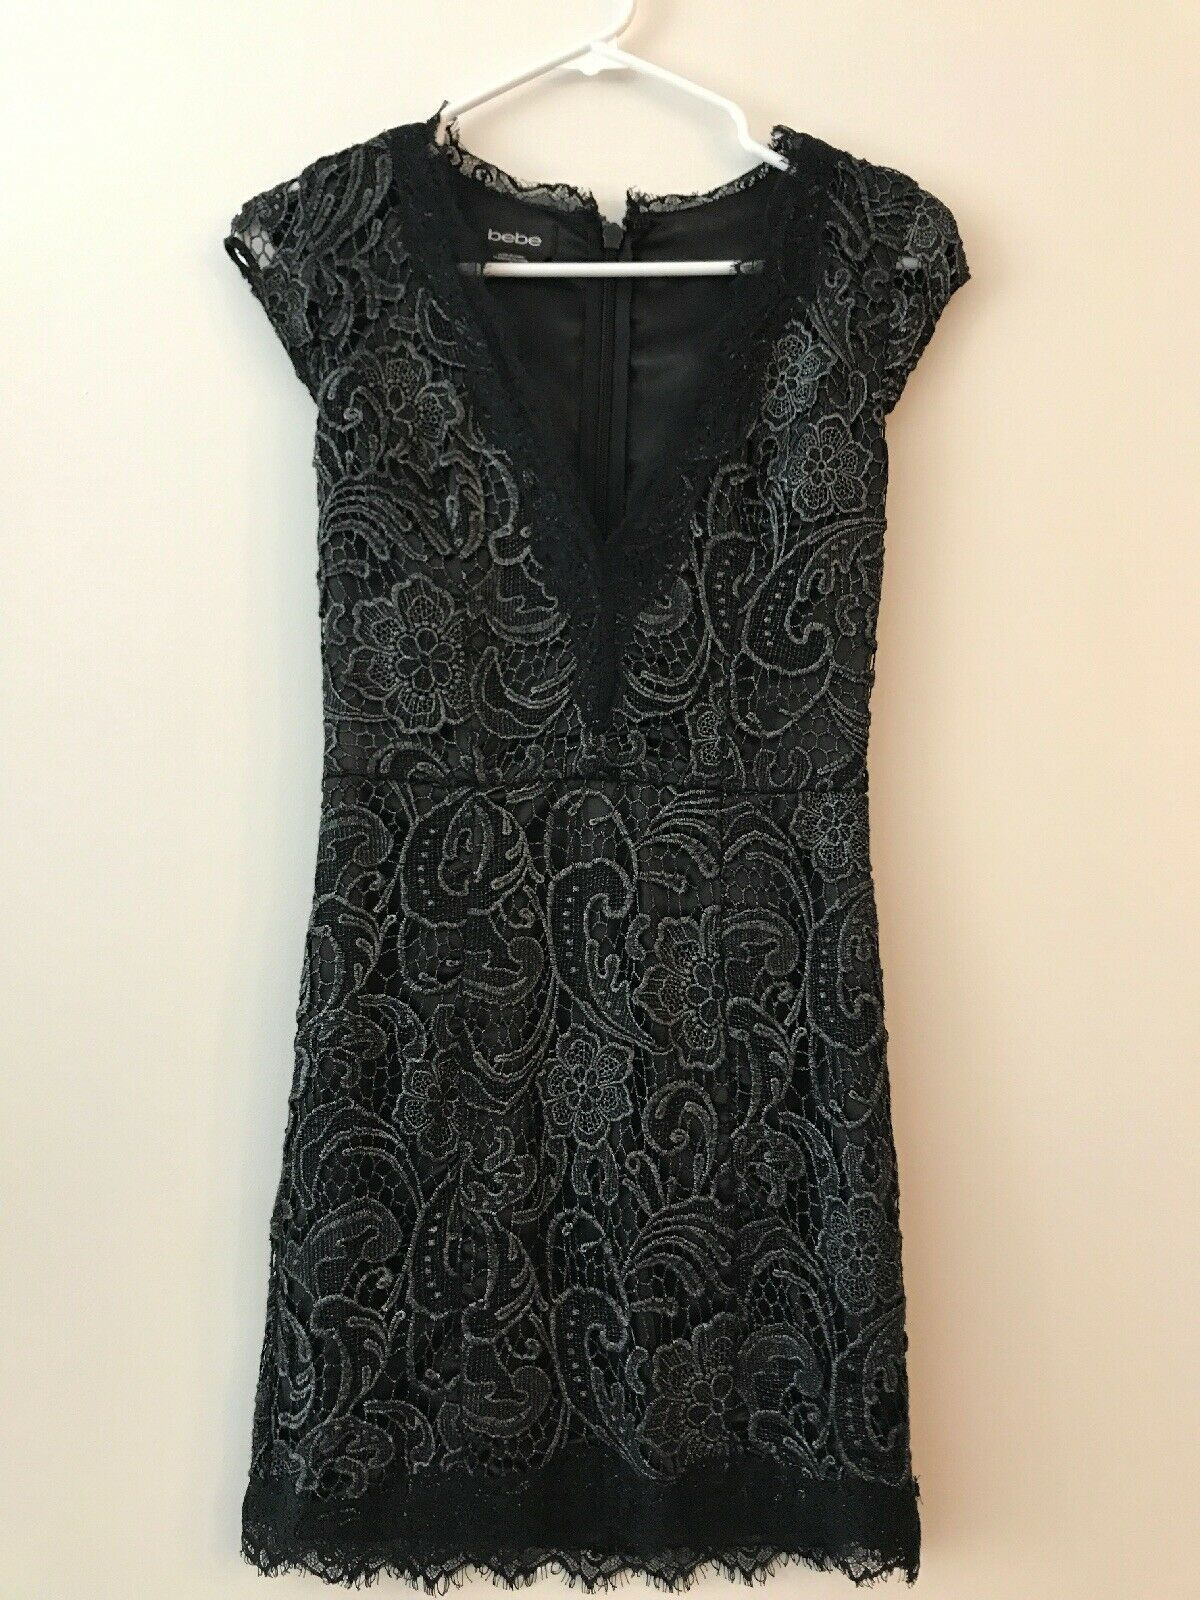 Bebe schwarz Lace Short Cocktail Dress Größe 0